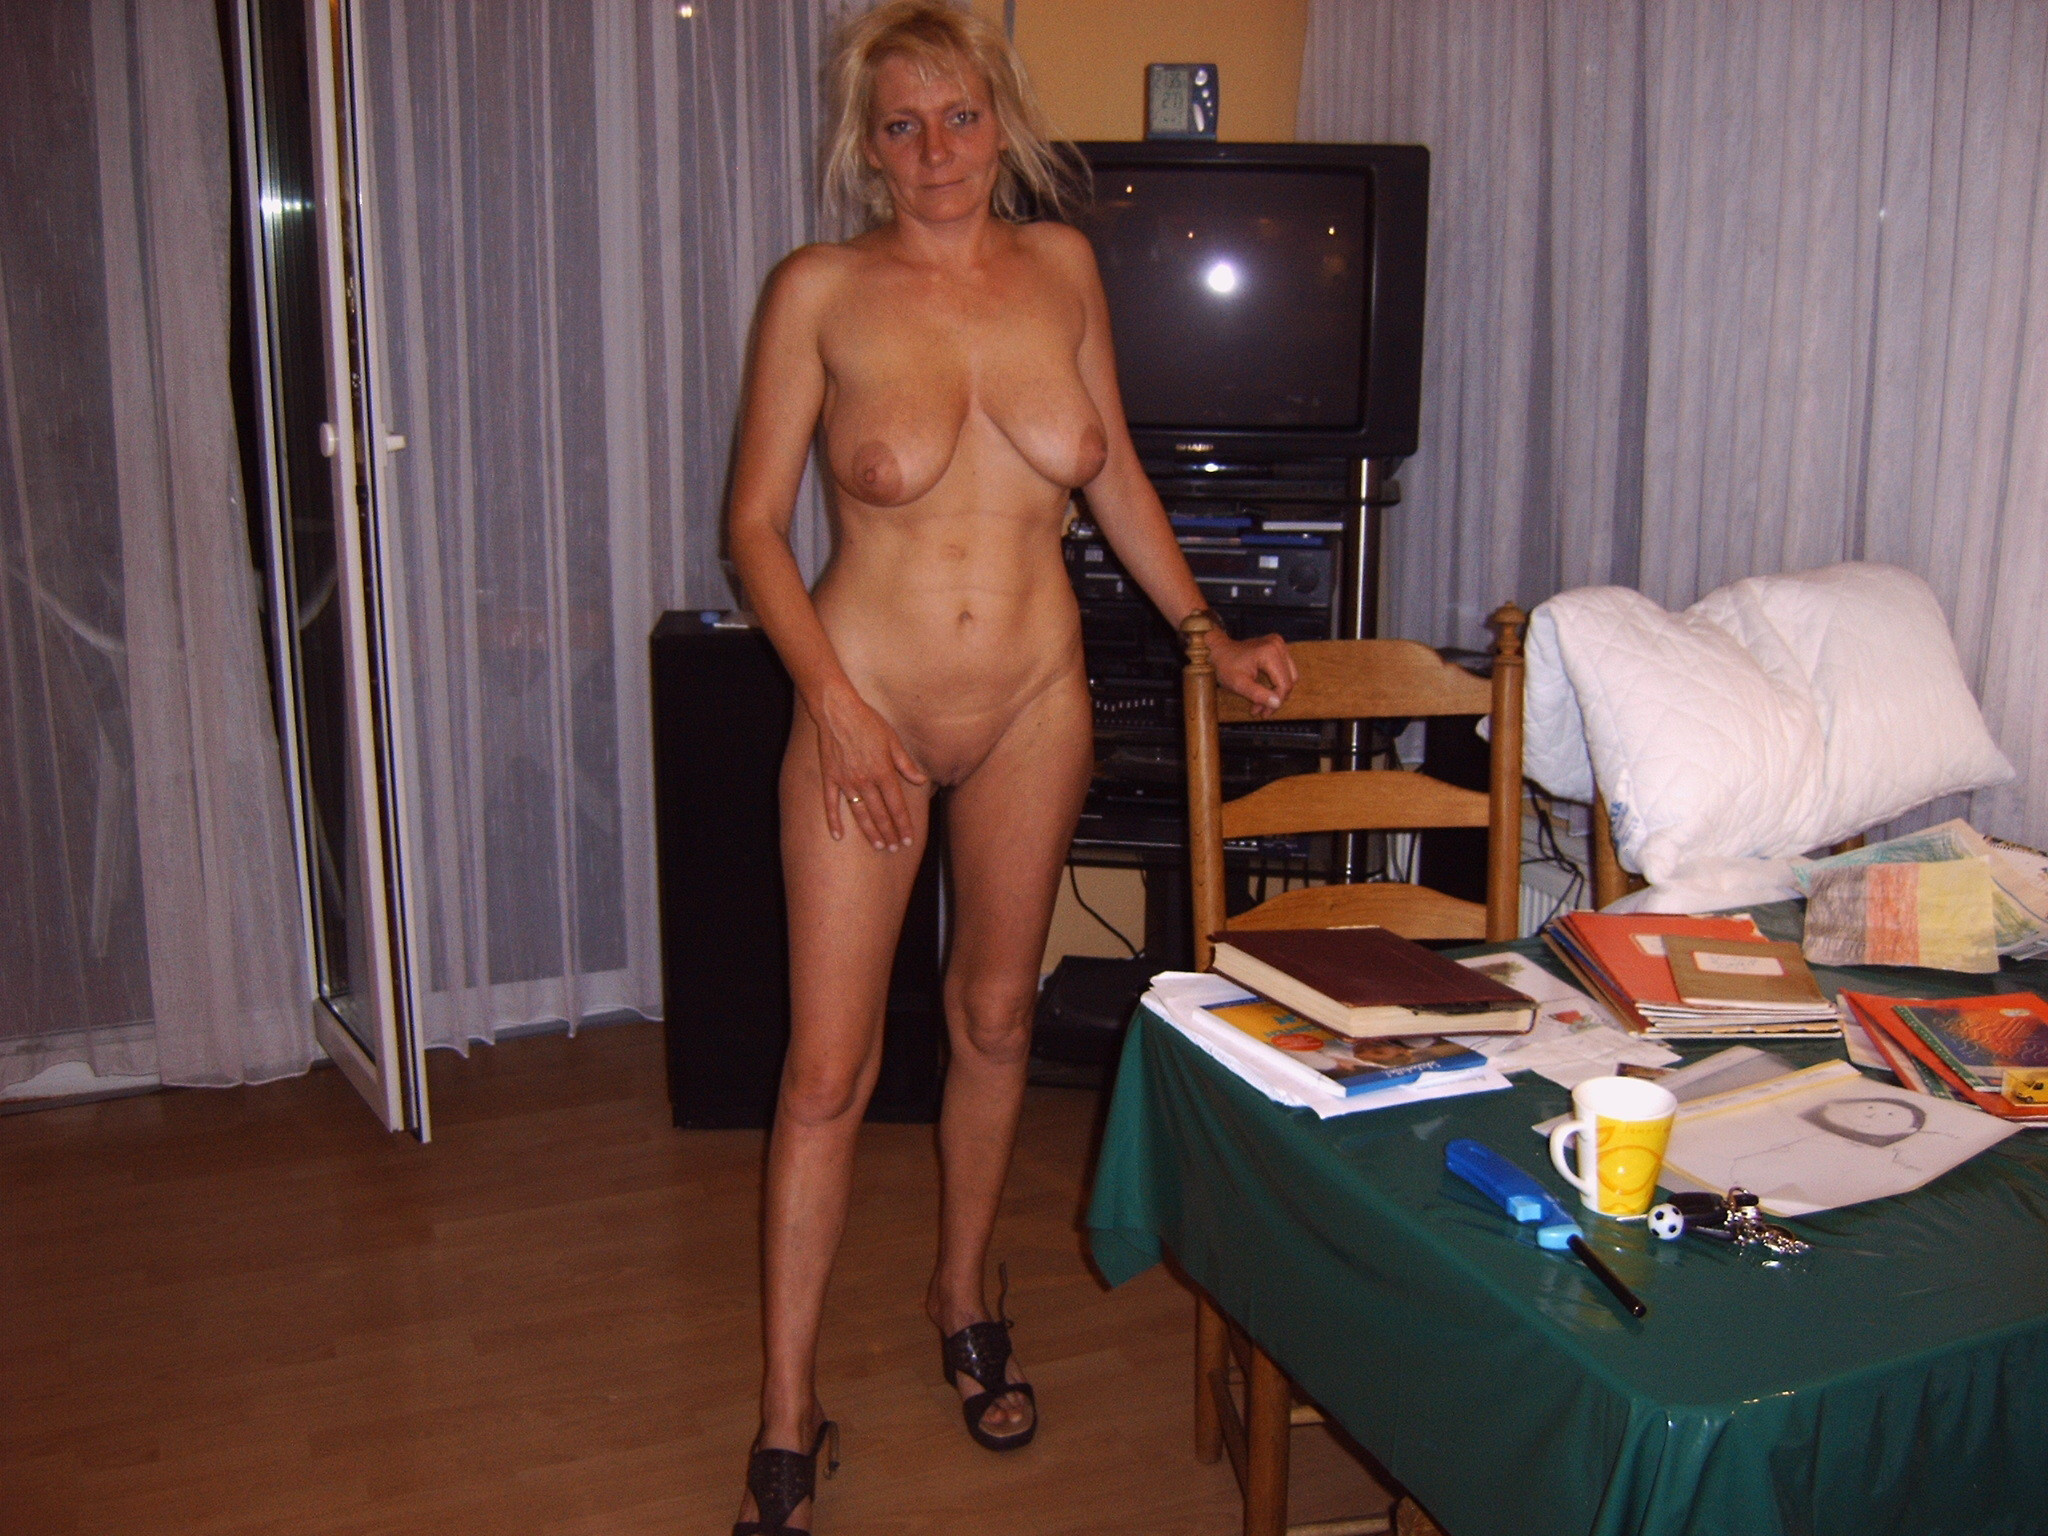 amateur-milf-striptease-video-milf-naked-awesome